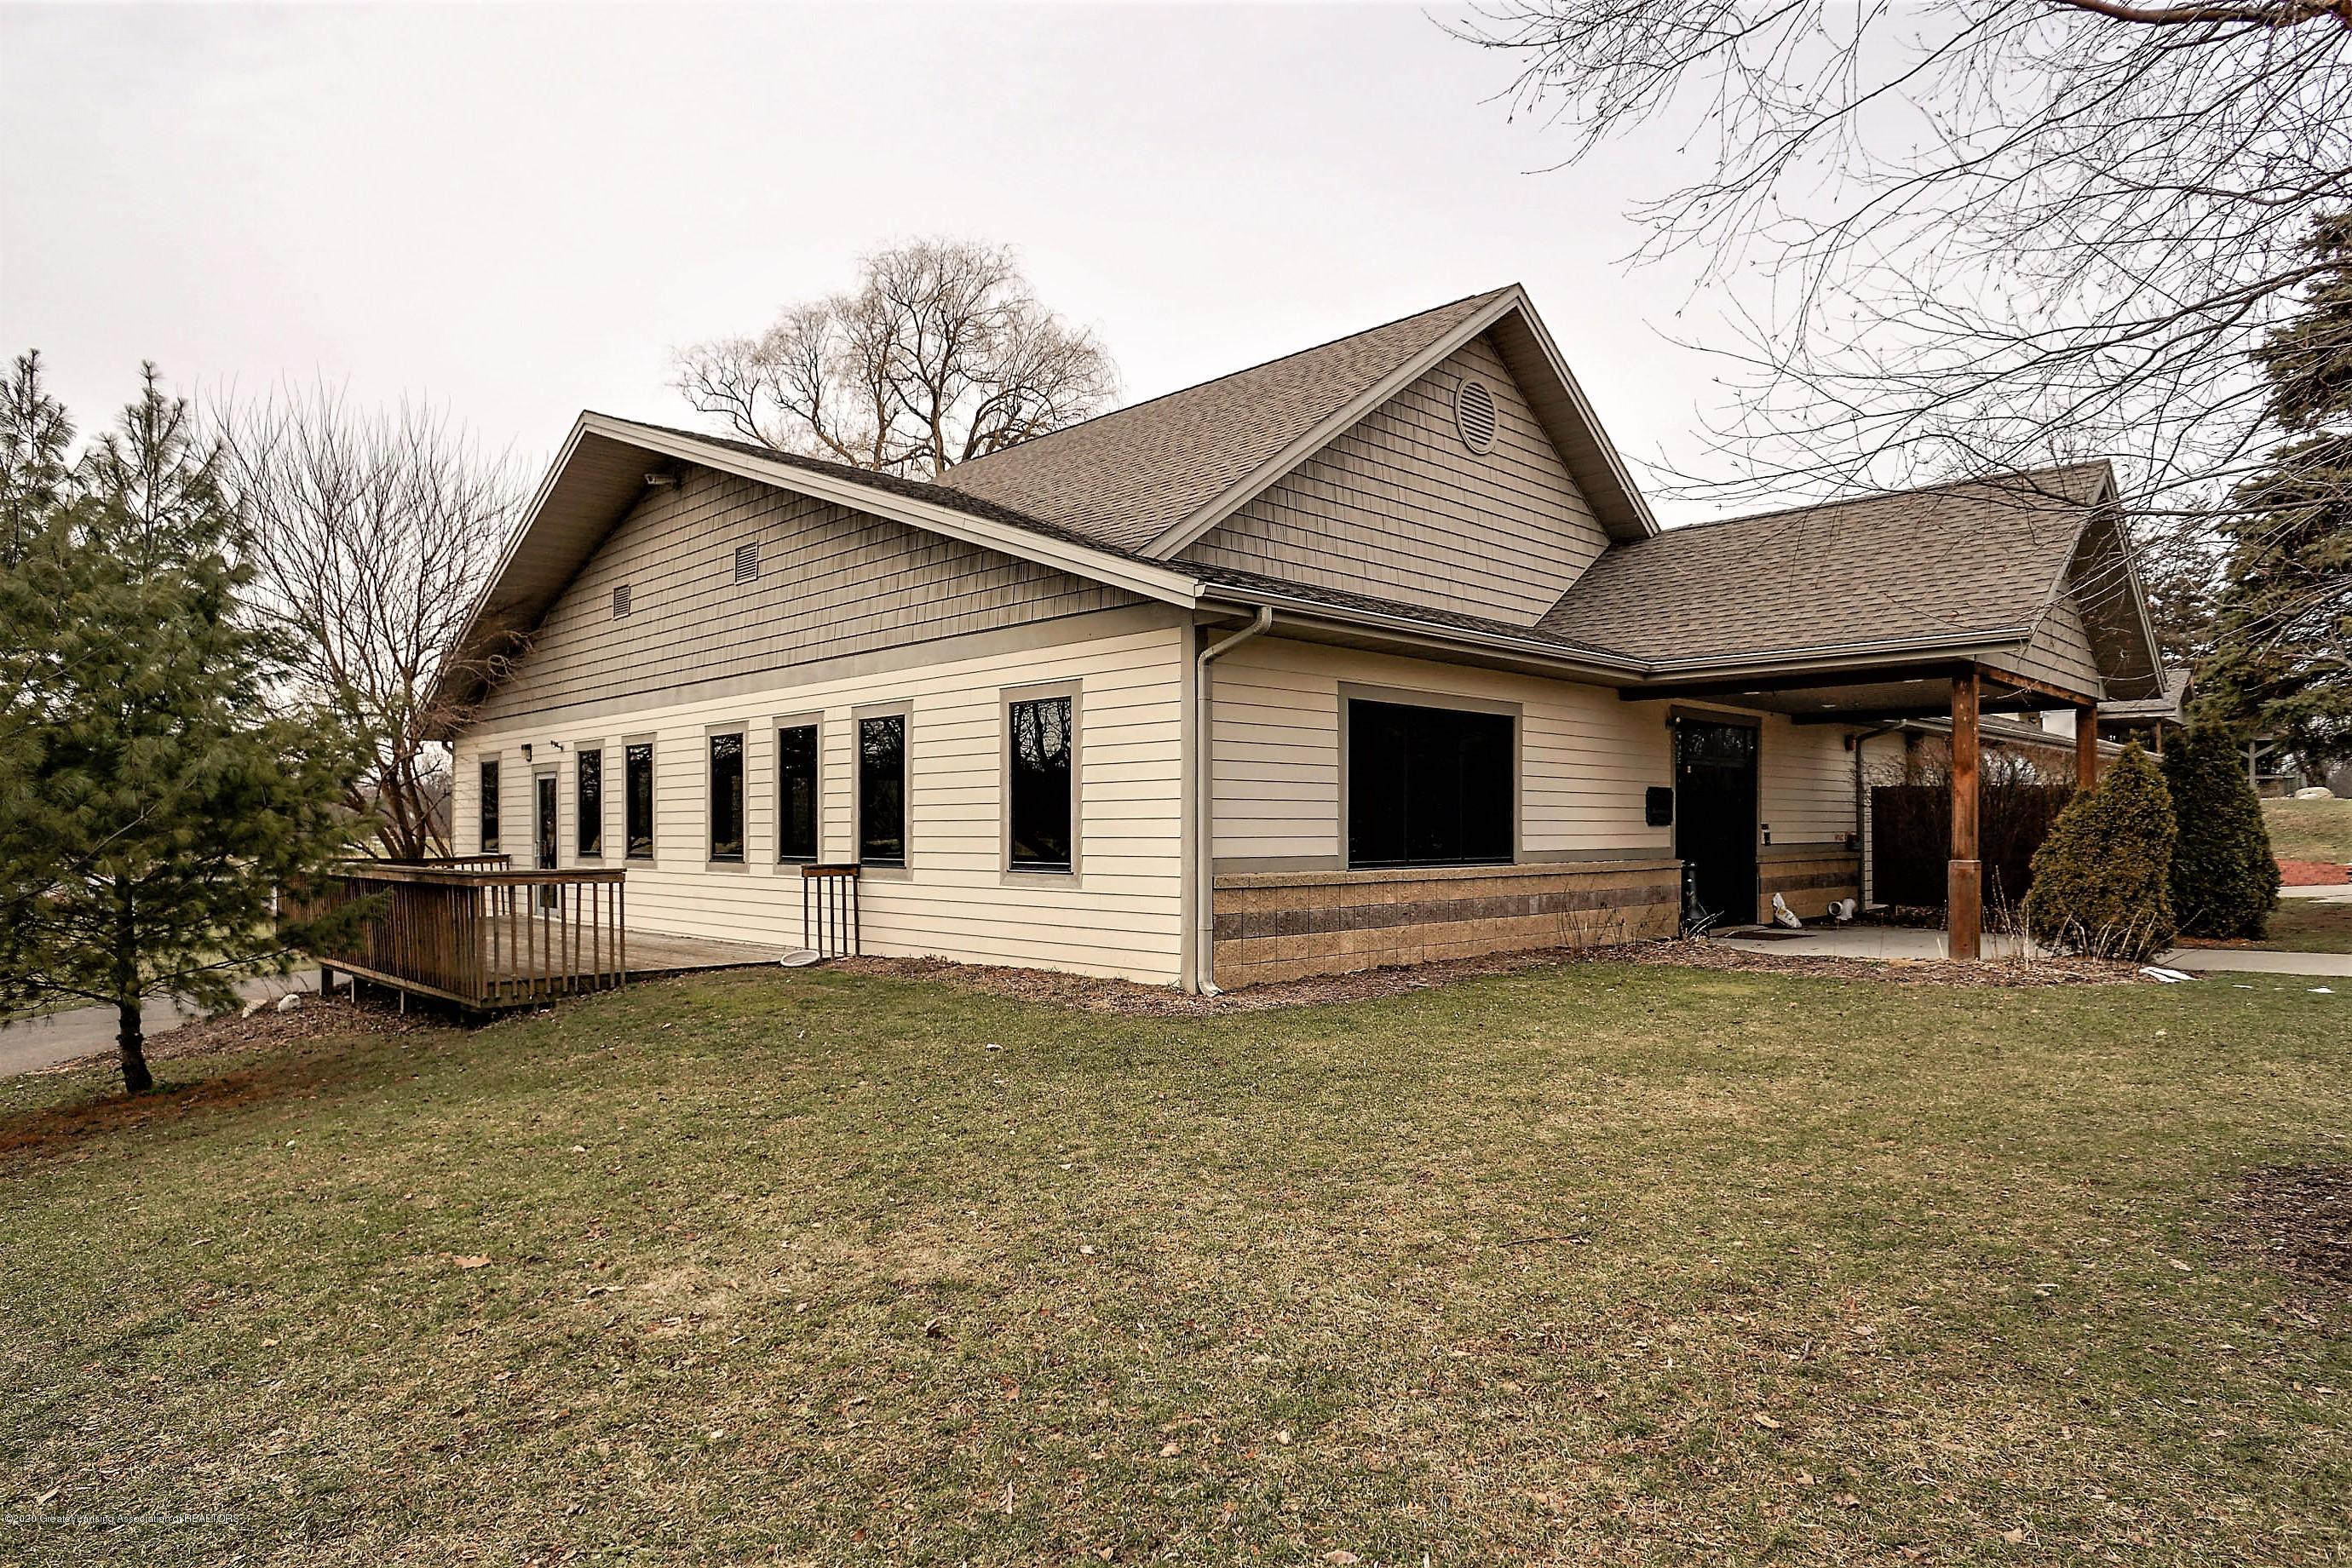 2395 Washington Rd - ChisholmHills (84) (002) - 1